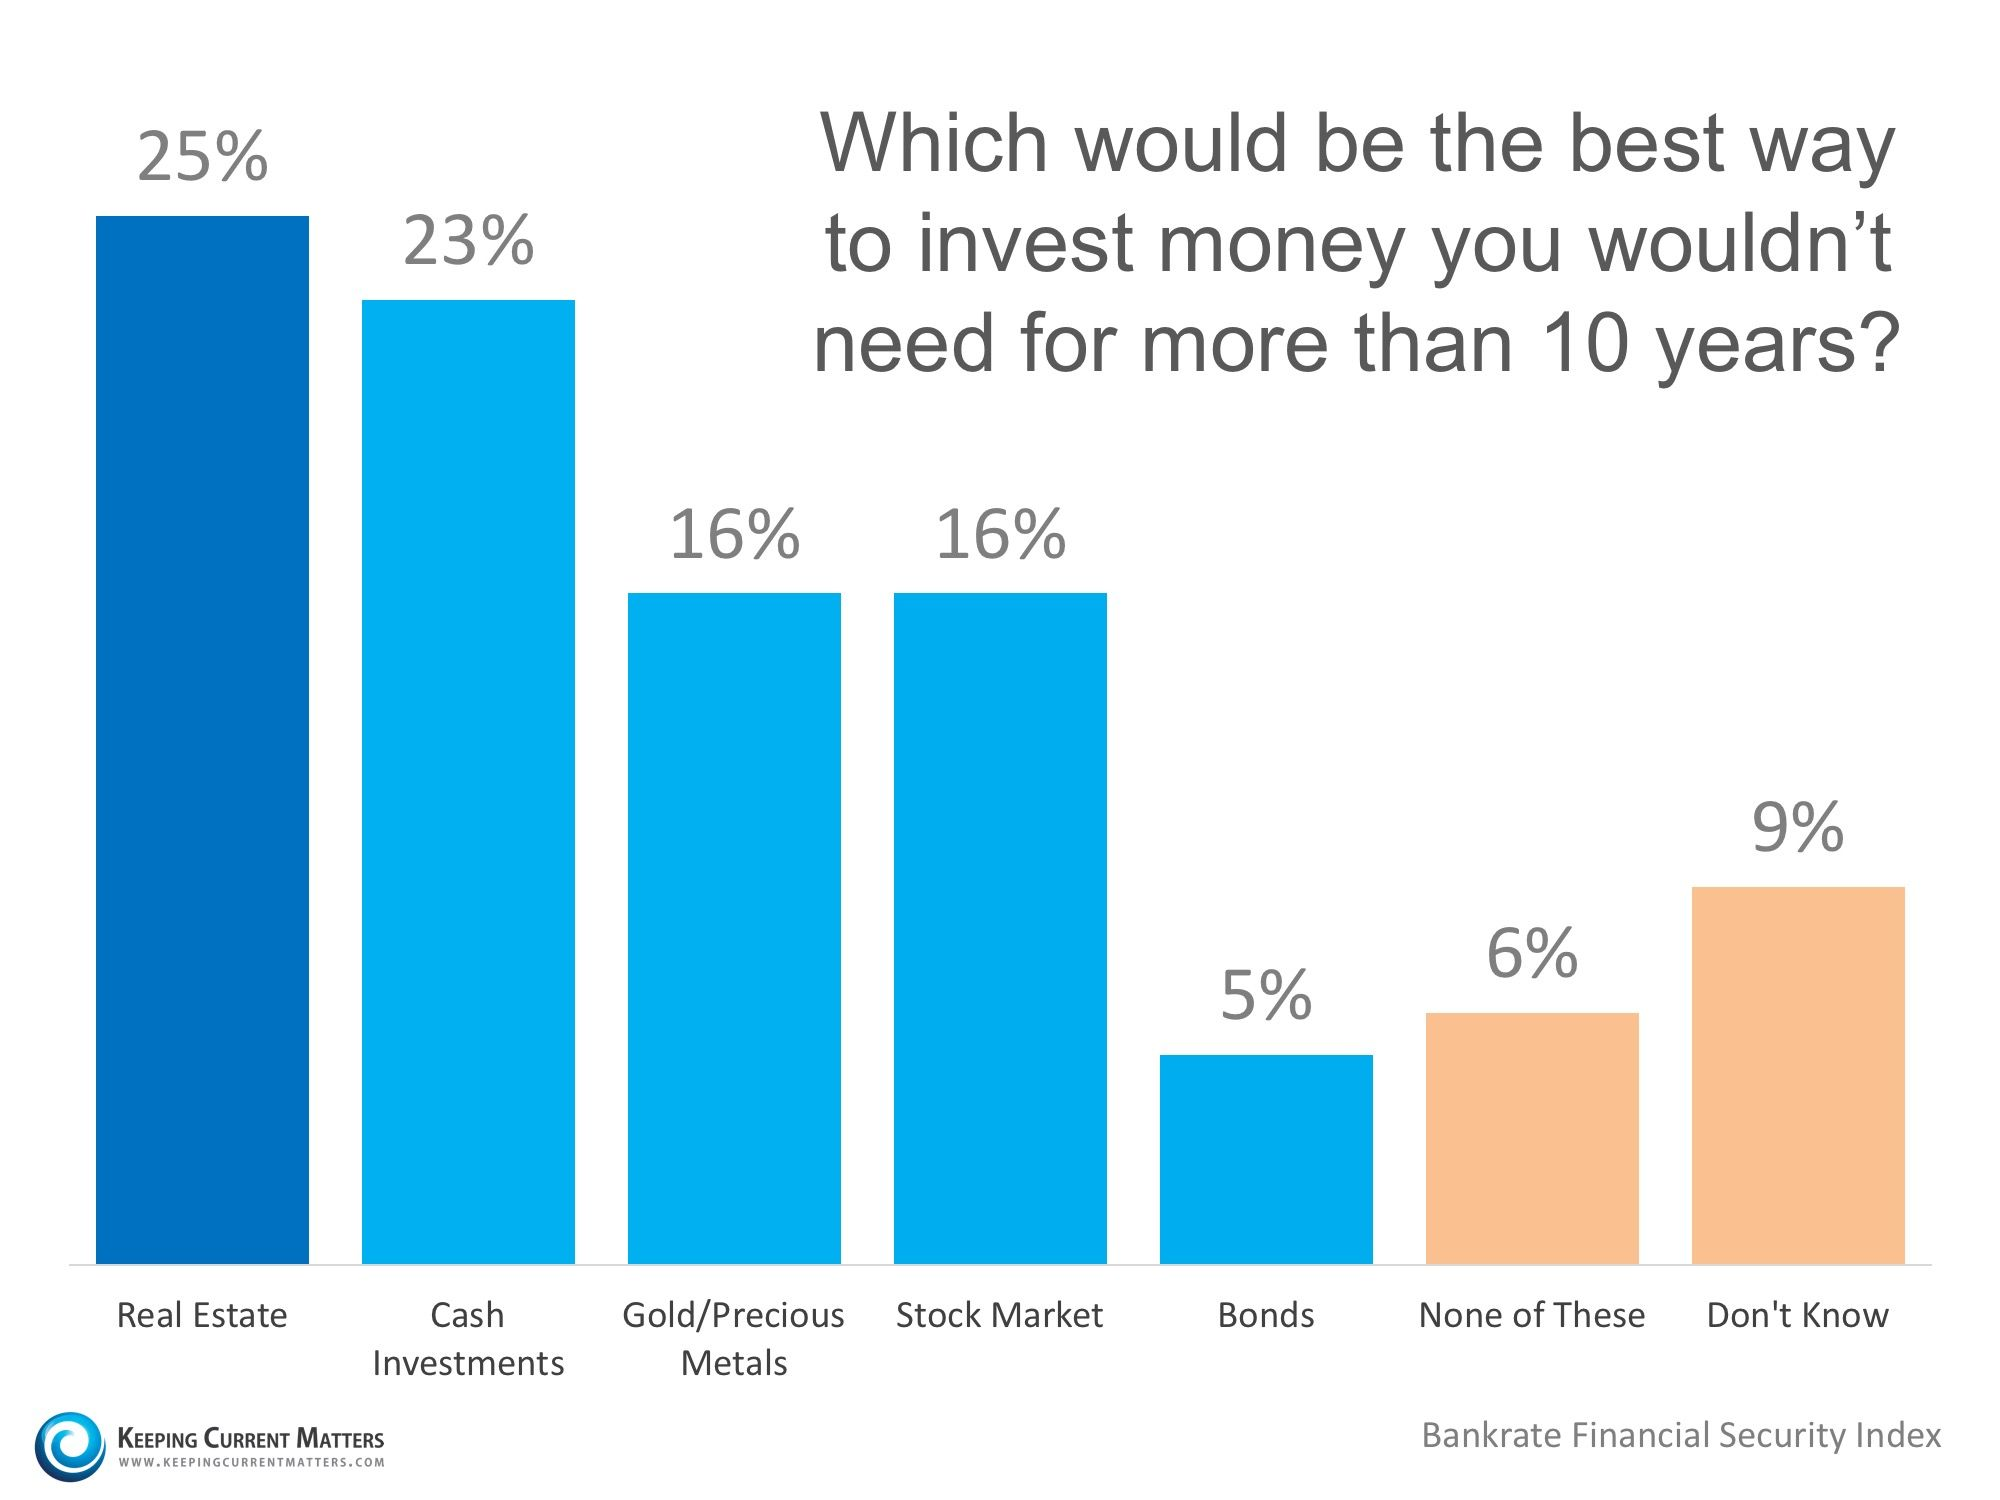 Americans believe real estate is best longterm investment